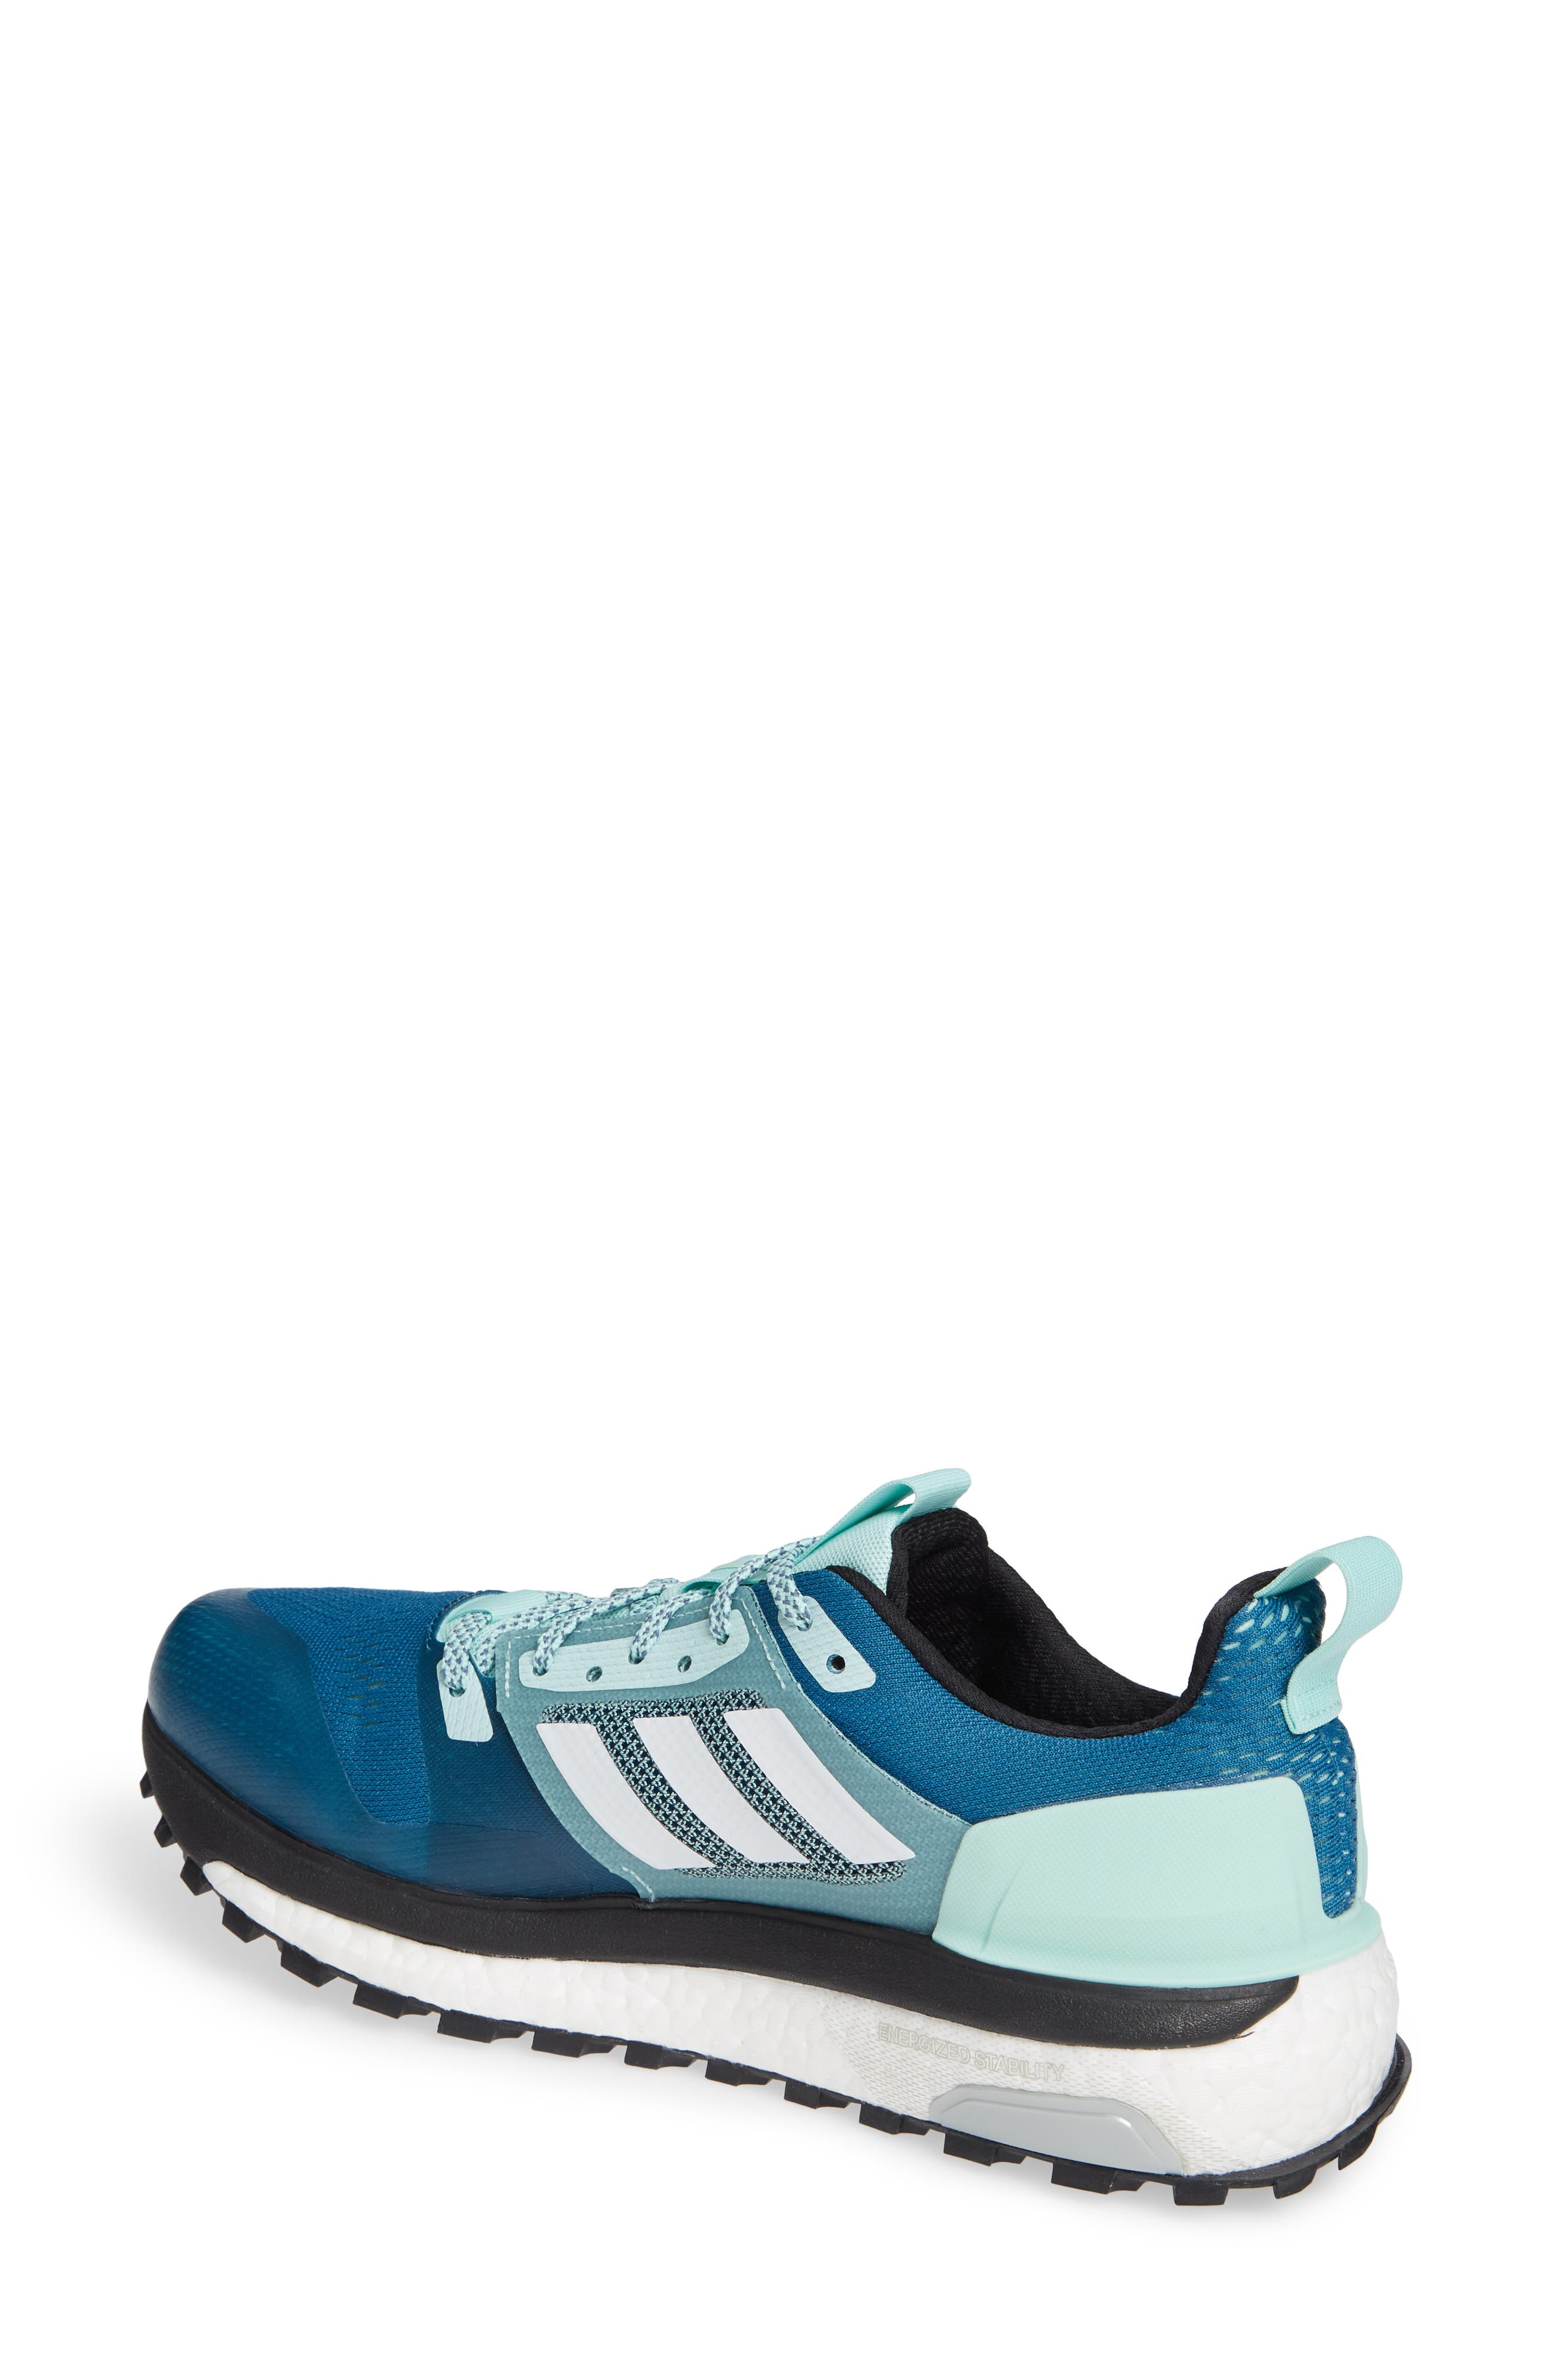 Supernova Trail Running Shoe,                             Alternate thumbnail 2, color,                             REAL TEAL/ WHITE/ CLEAR MINT